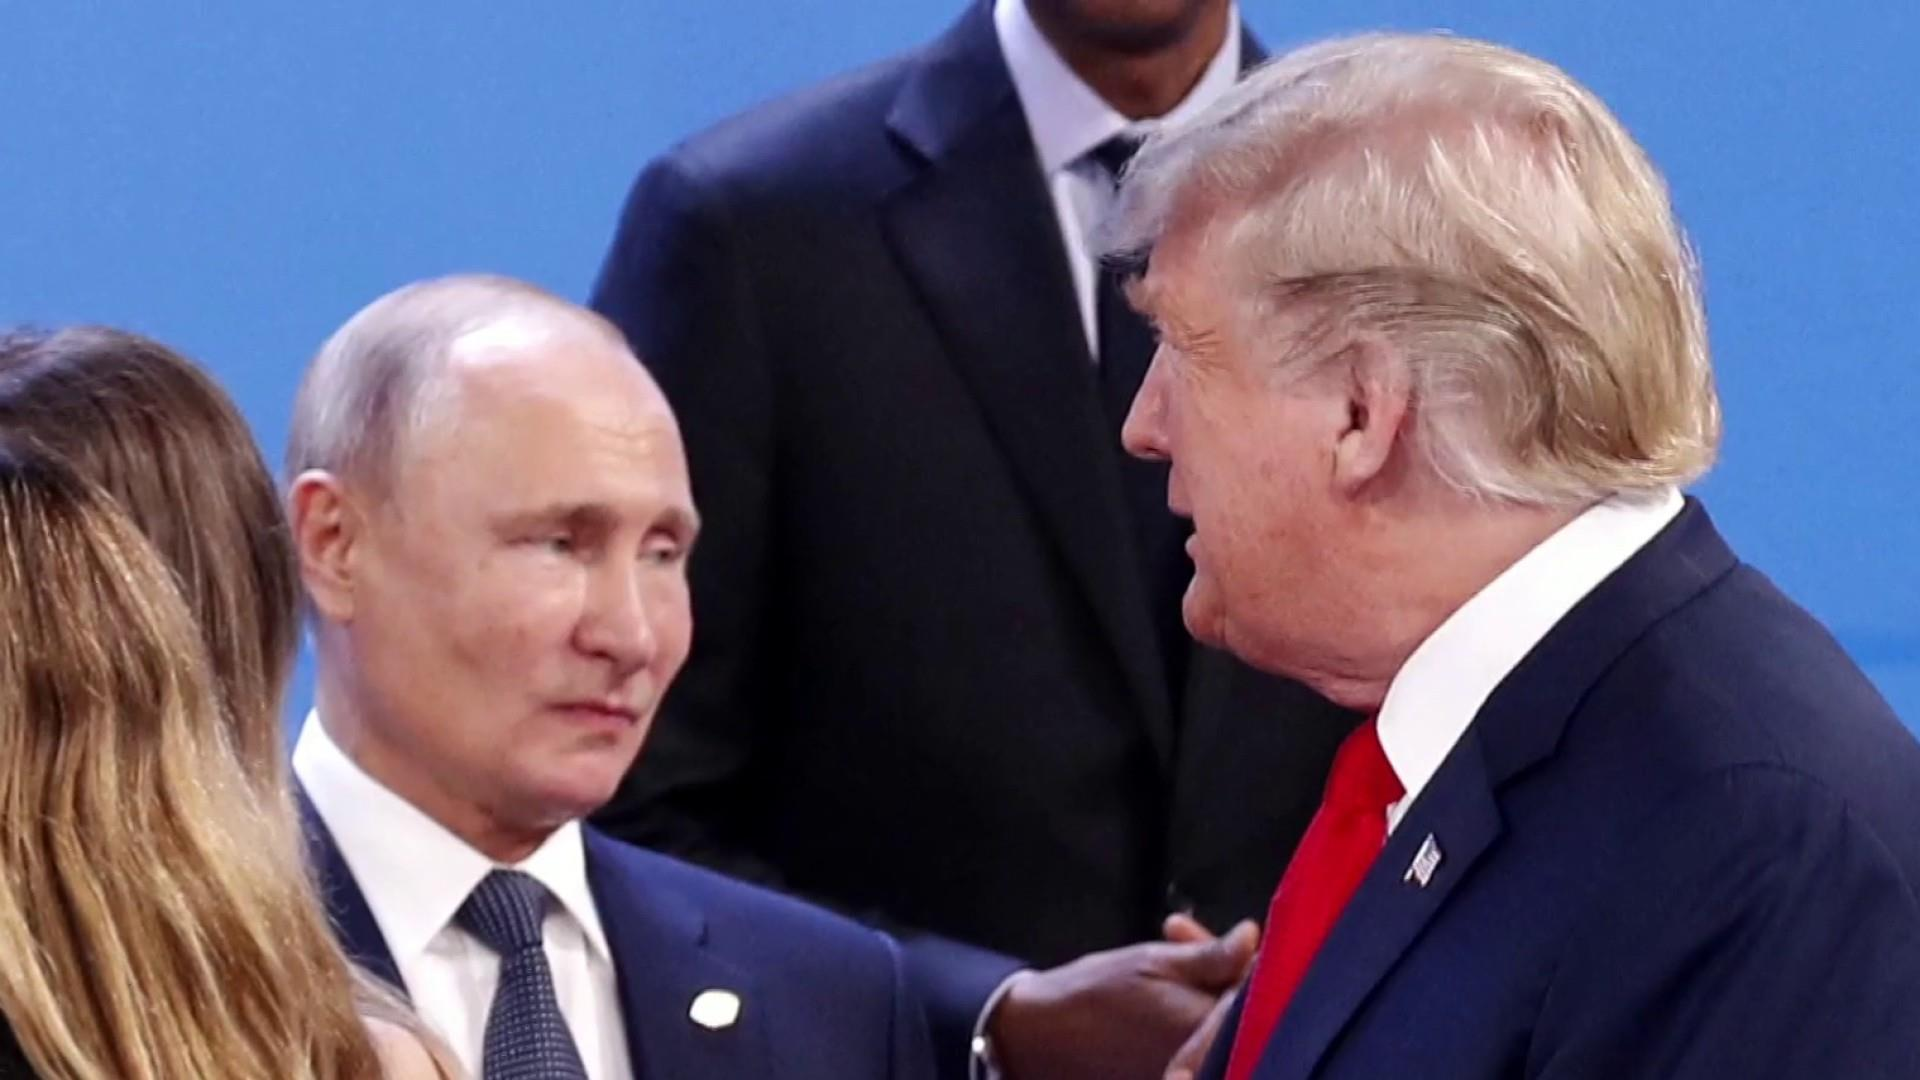 Why Trump didn't want US translator when talking to Putin